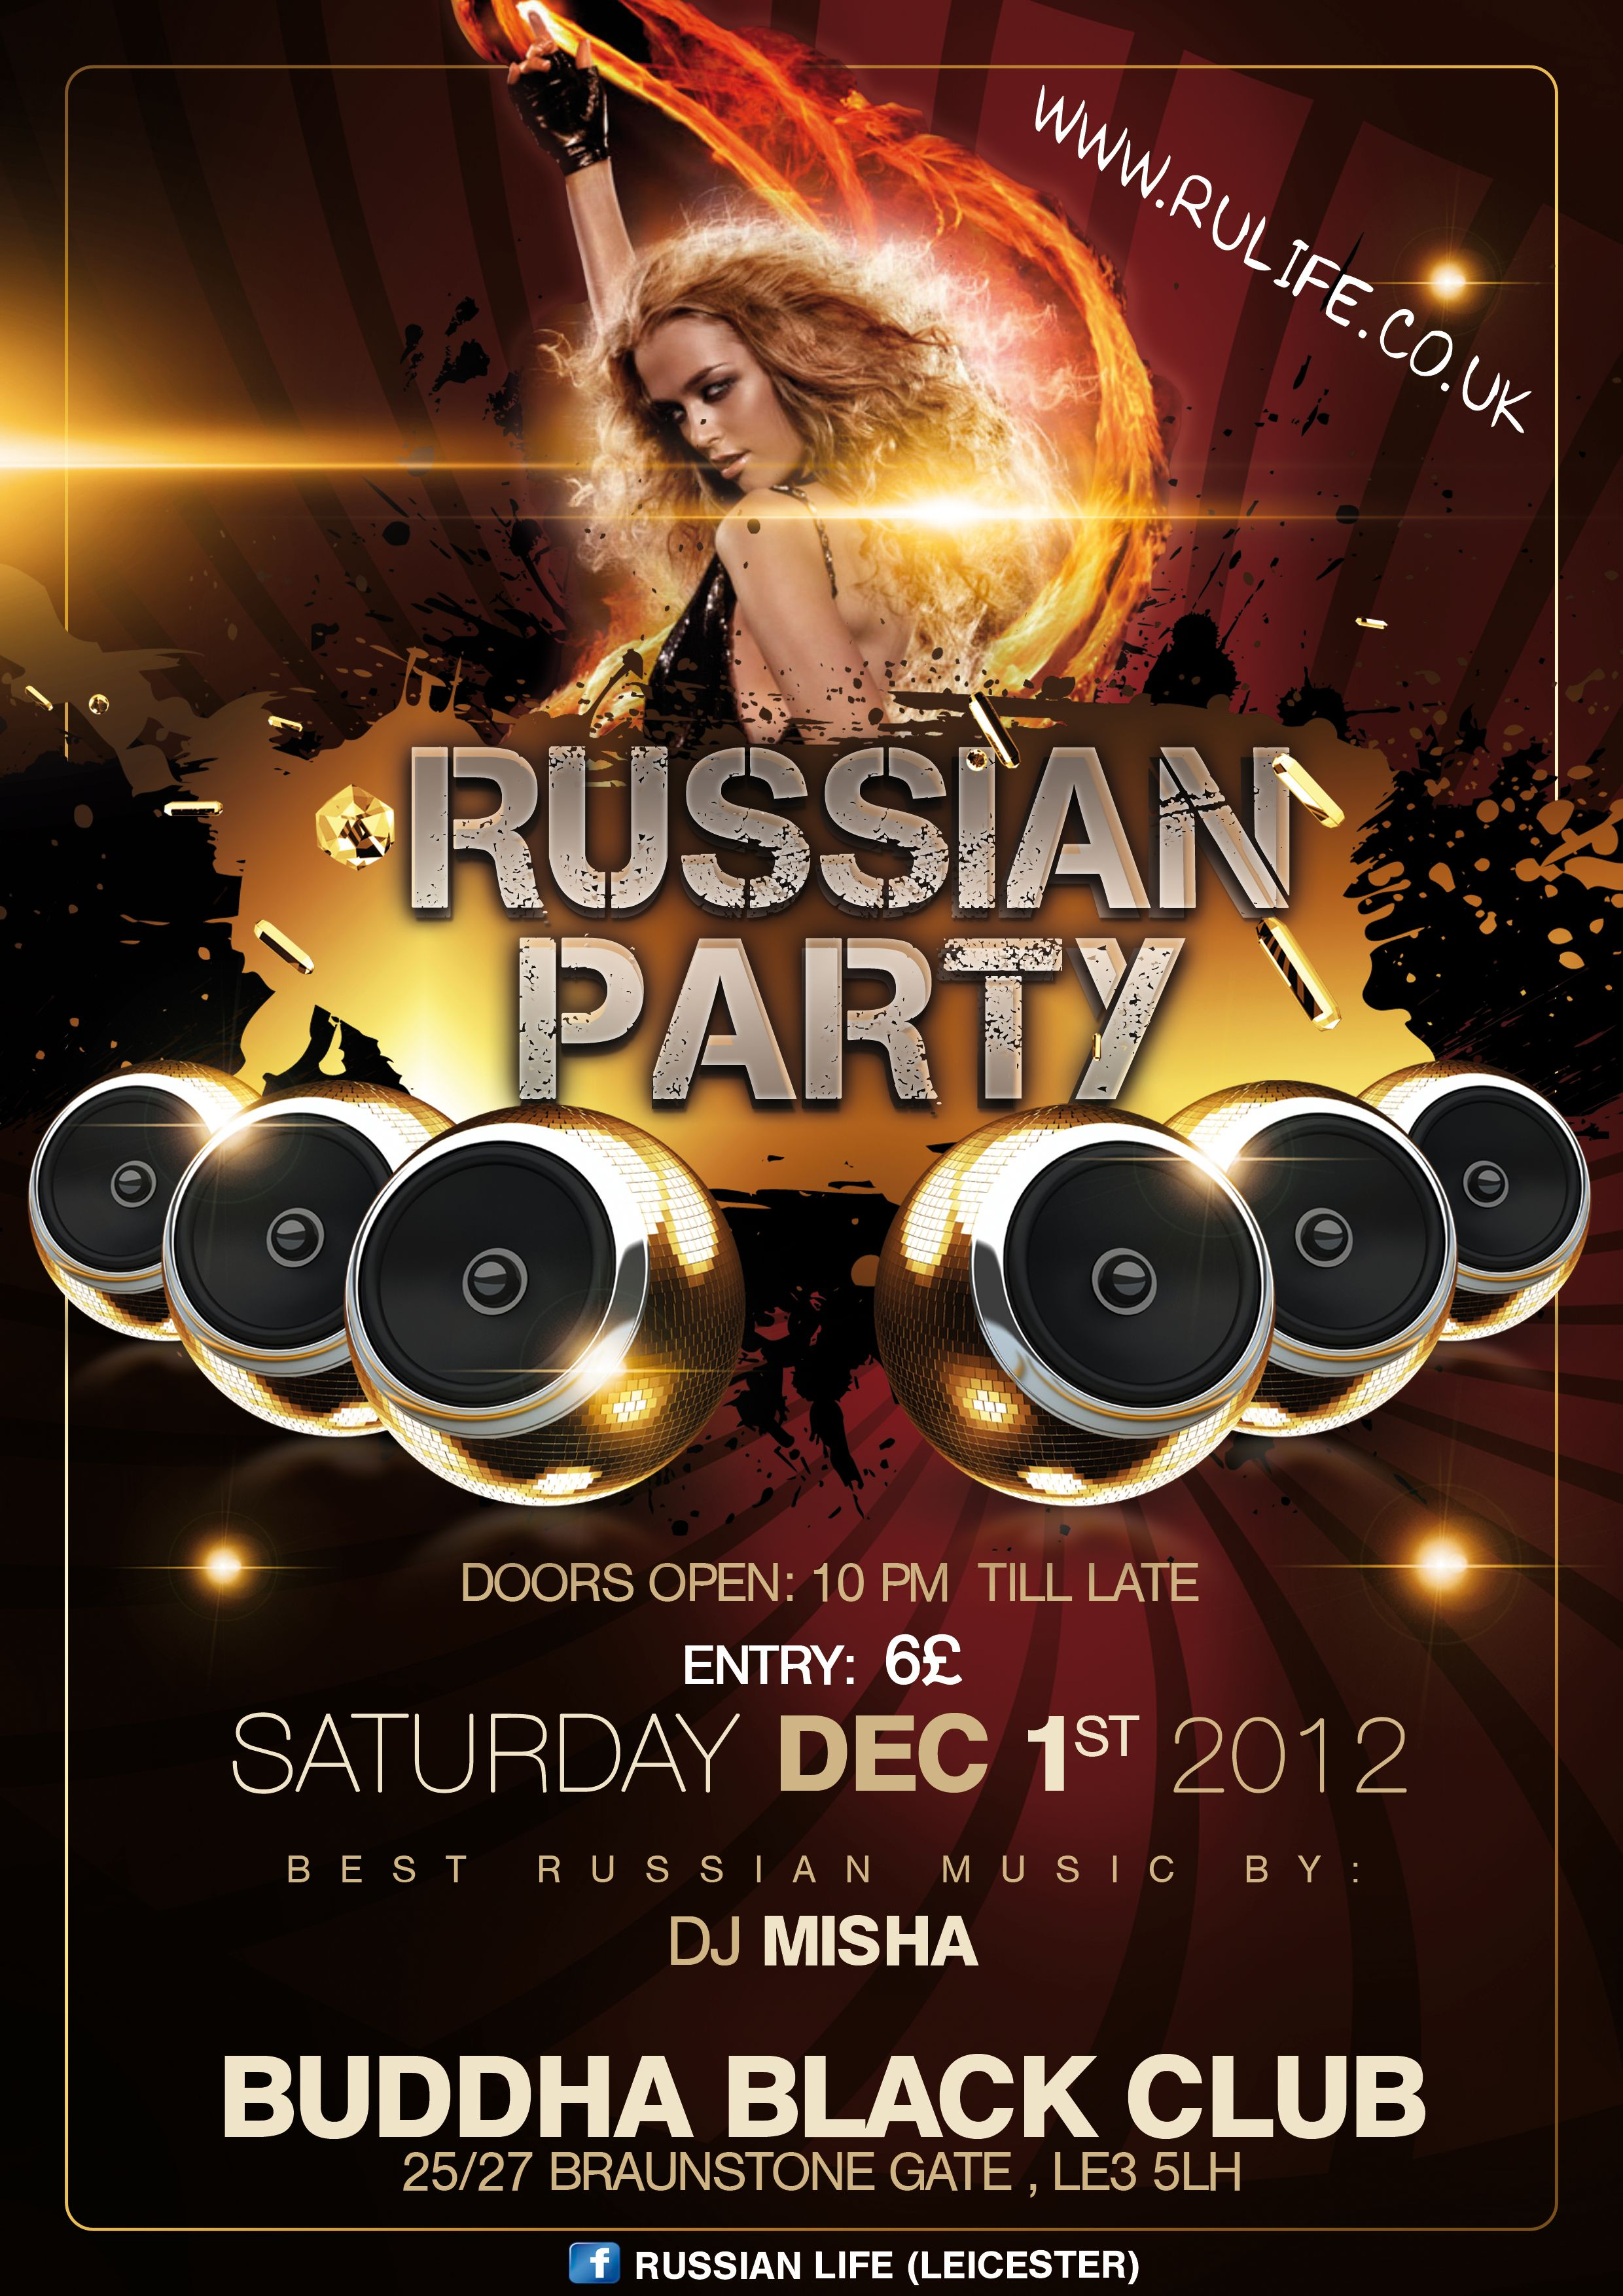 Русская дискотека в Лестере (Russian Party in Leicester) 01.12.12